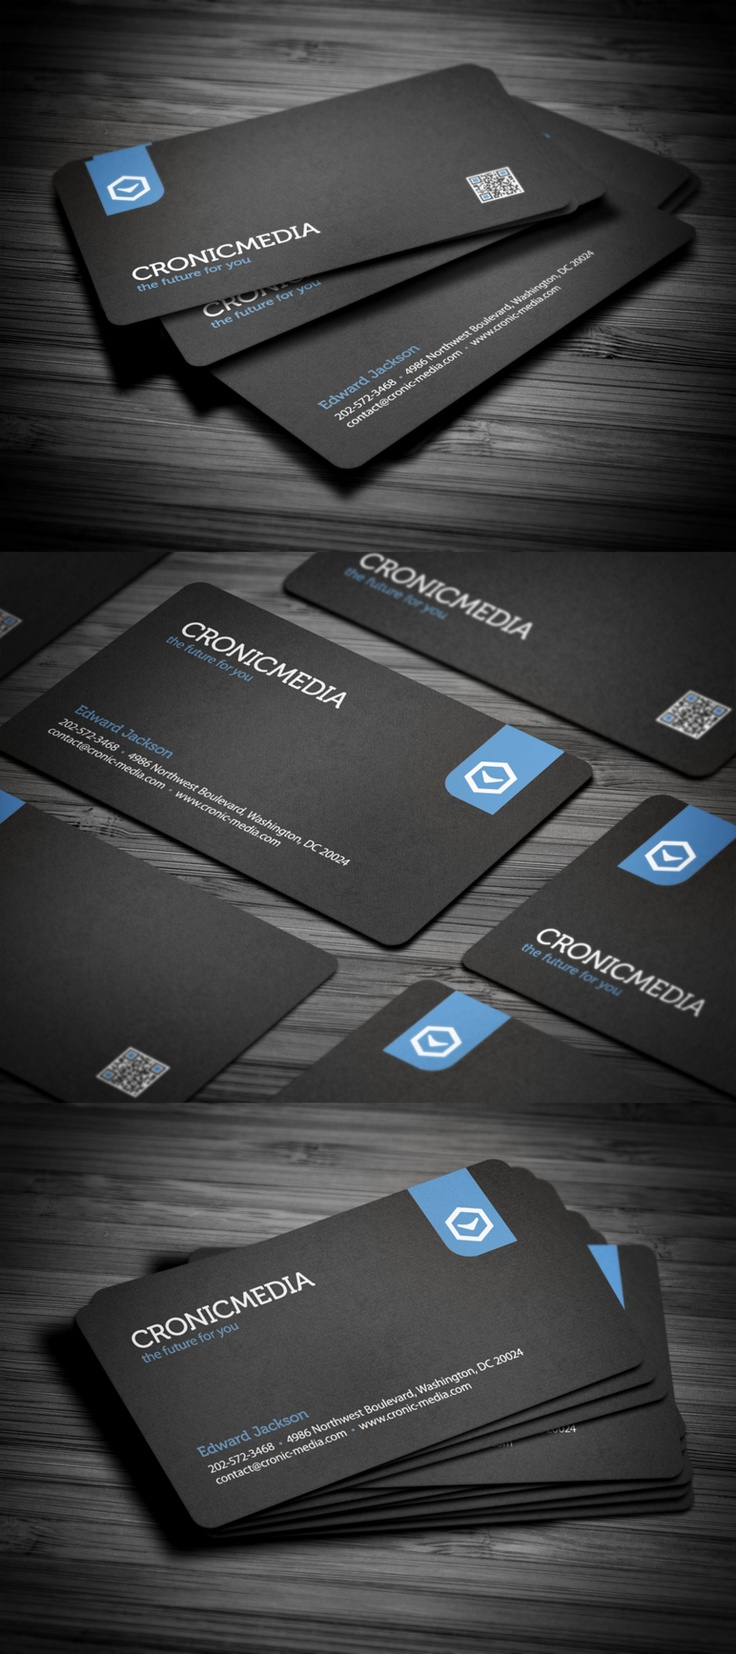 112 Best Creative Business Card Images On Pinterest Business Cards